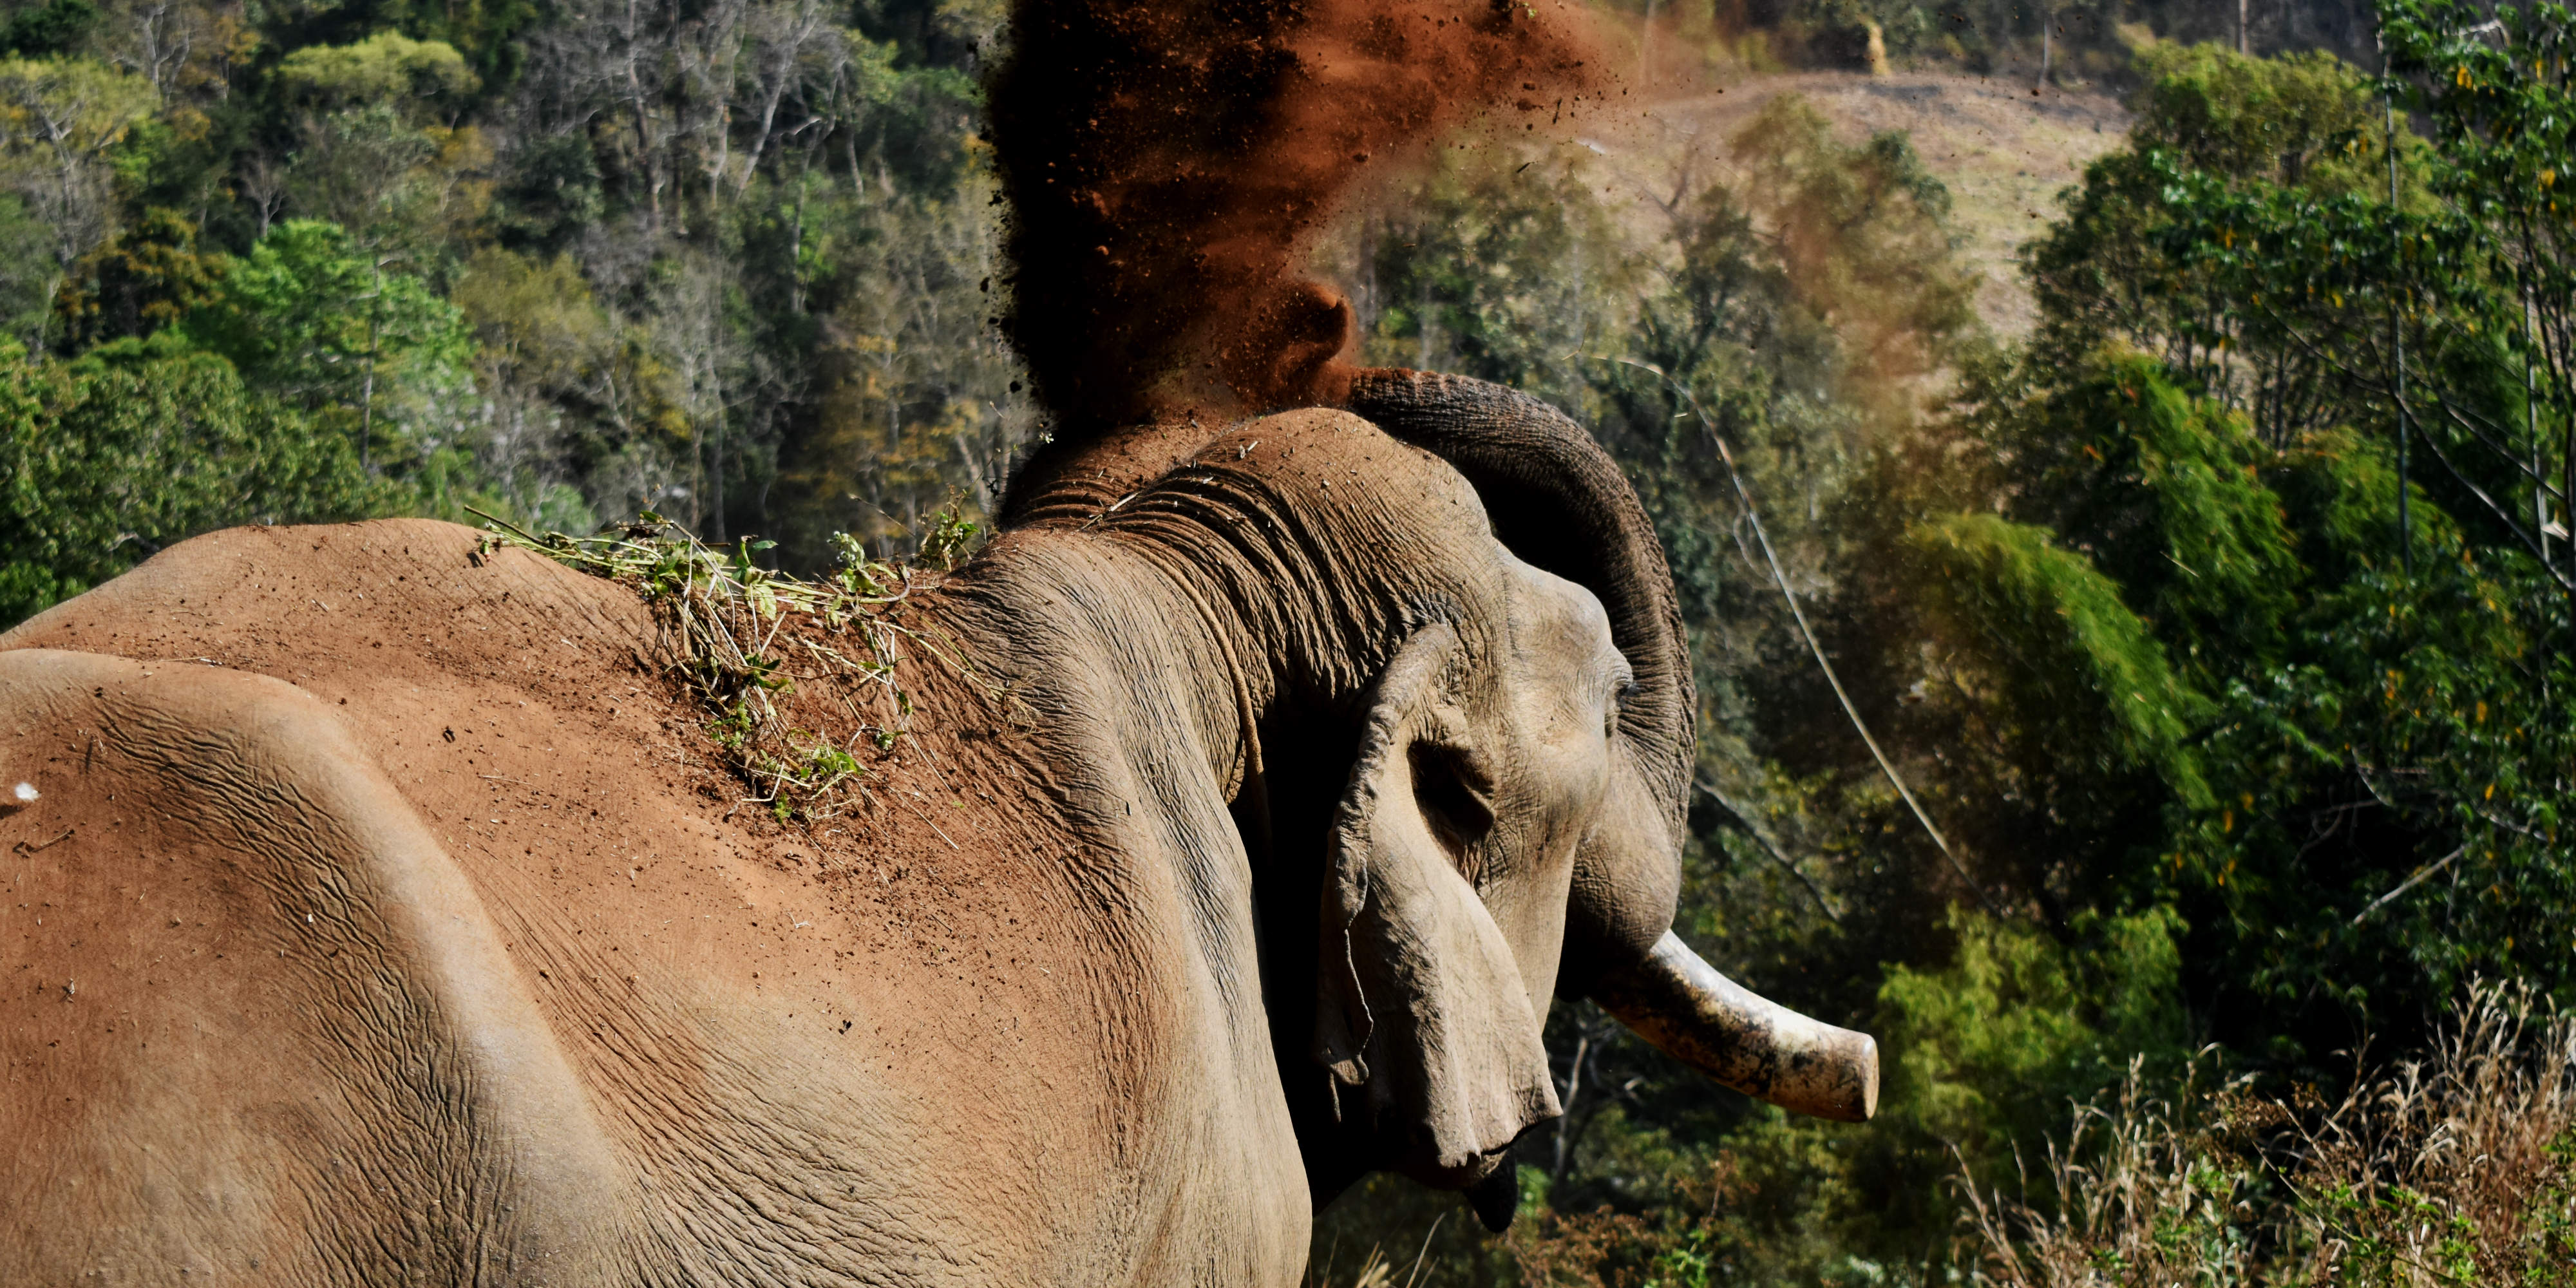 An elephant in Thailand flings dirt onto its back. After being reintegrated into the natural forest habitat, these elephants begin to display this kind of natural behaviour.